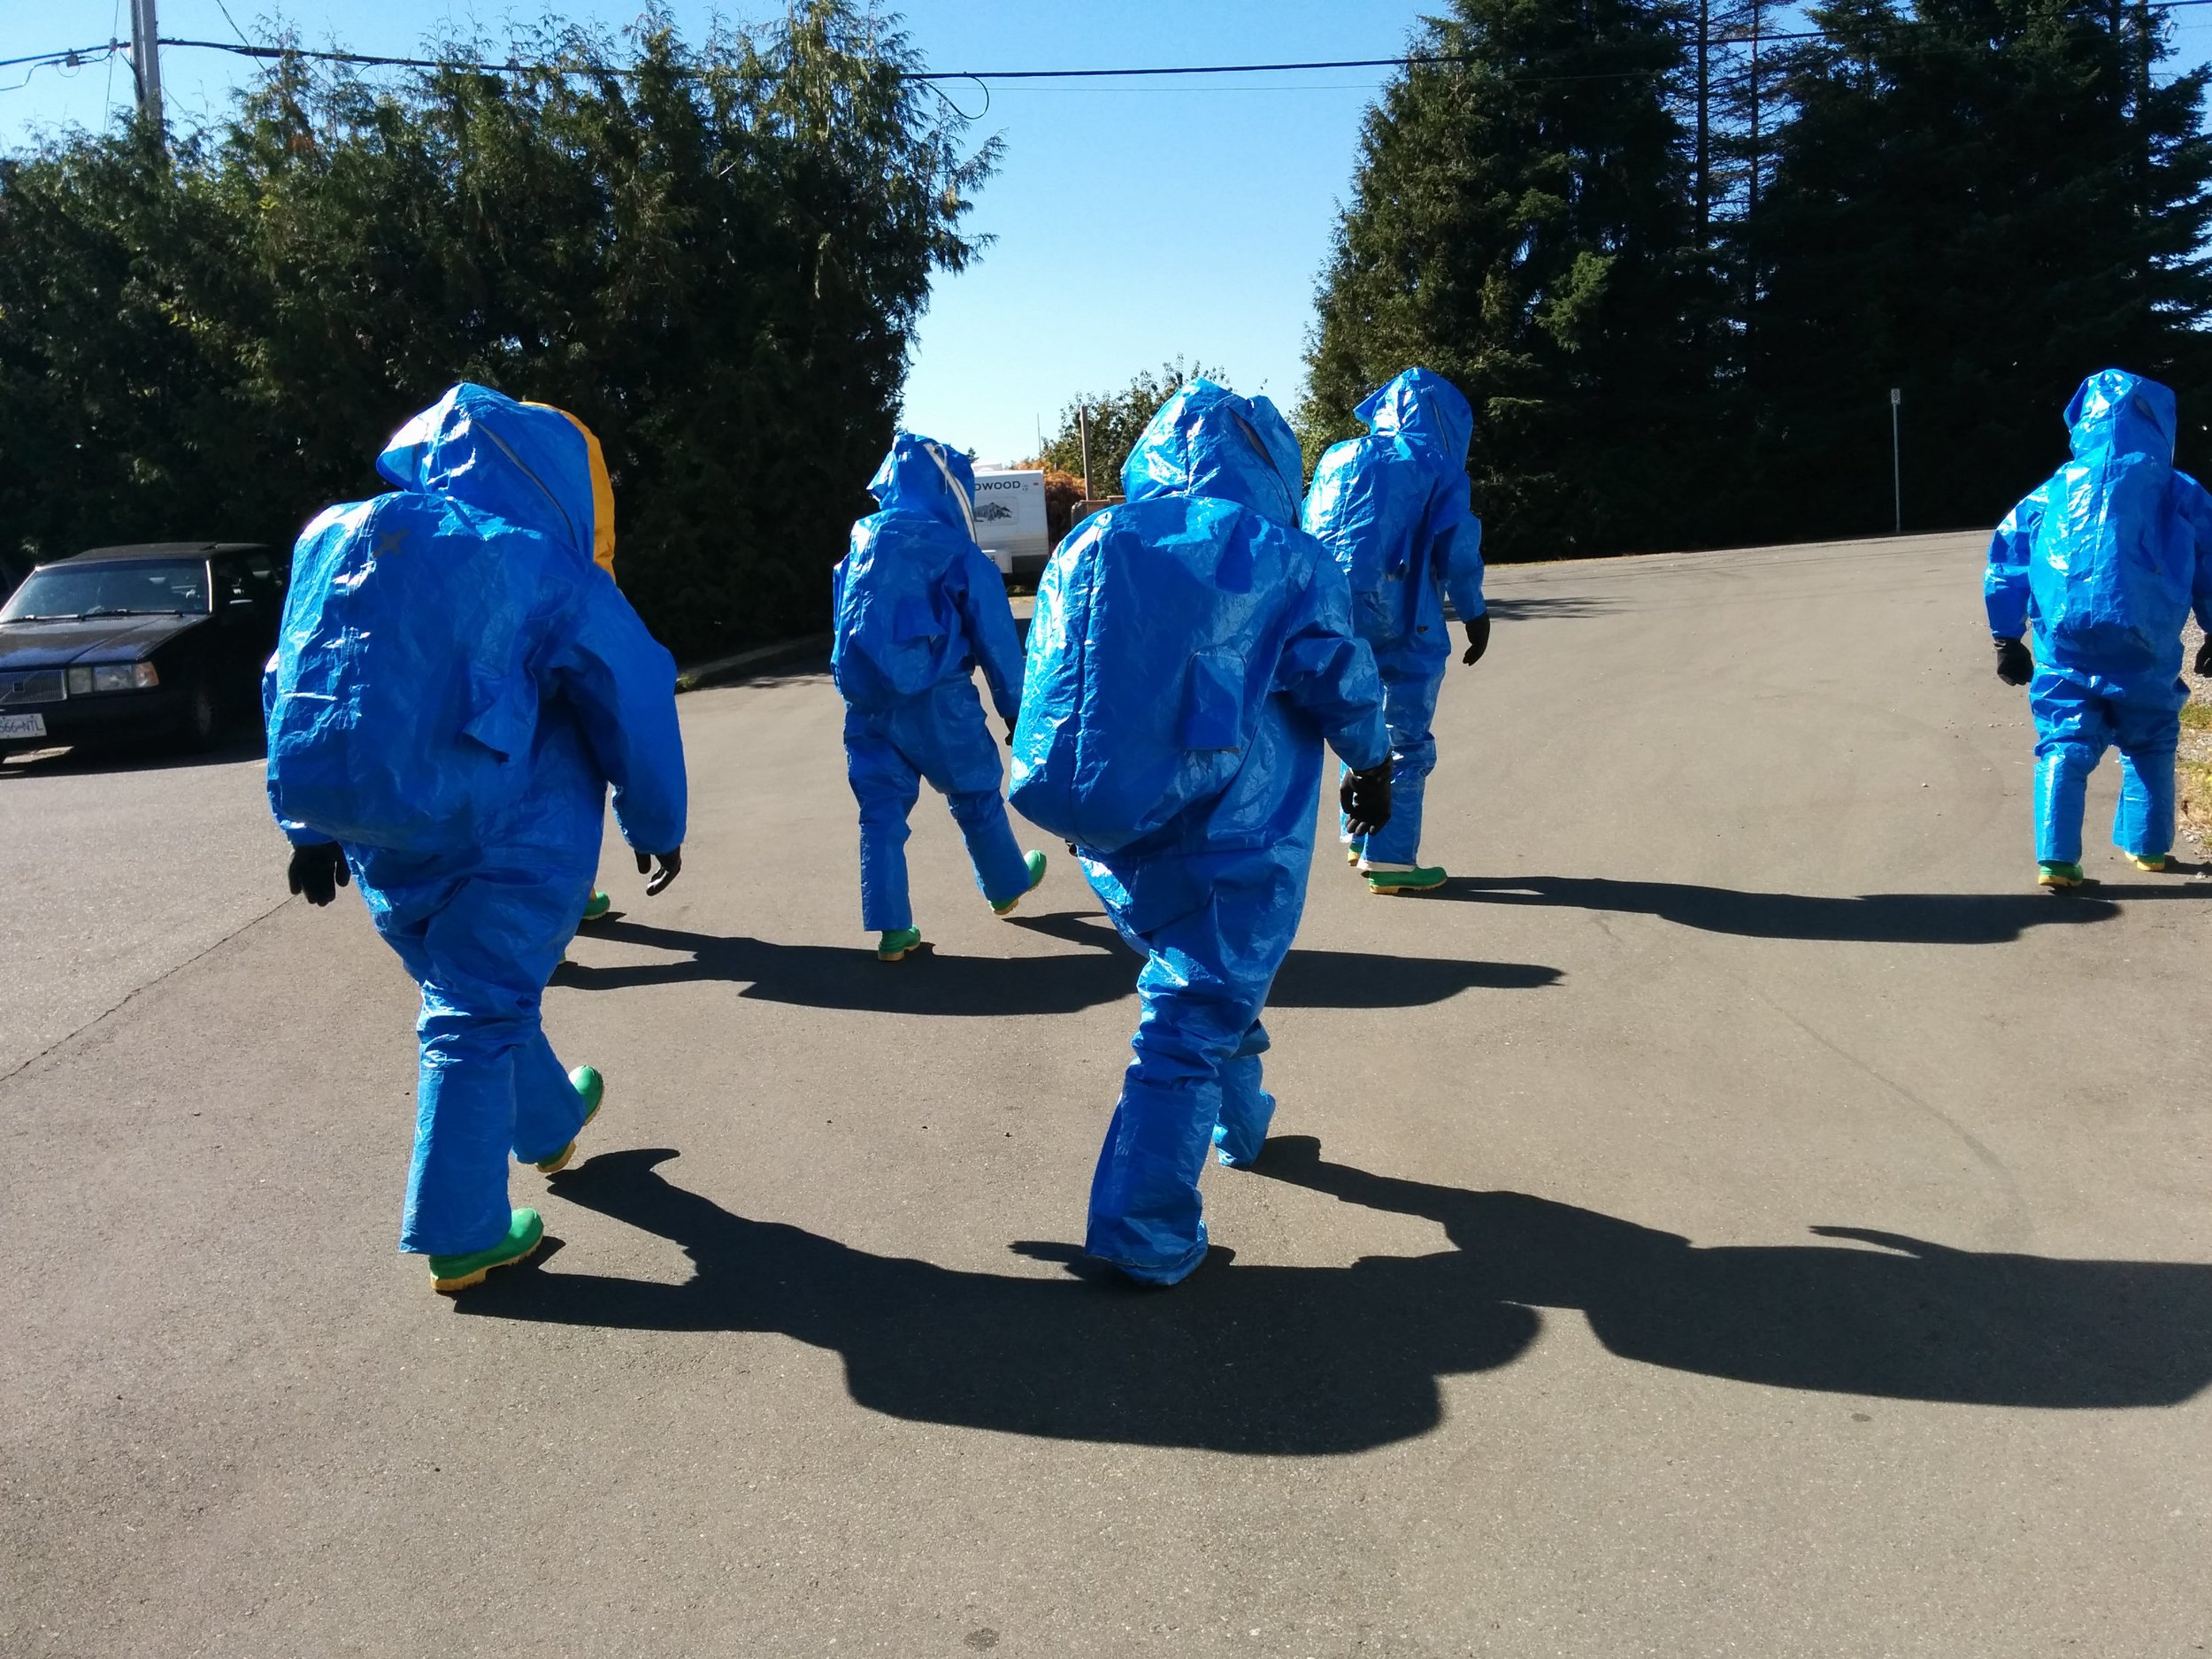 Feeling the heat in fully encapsulated HAZMAT suits